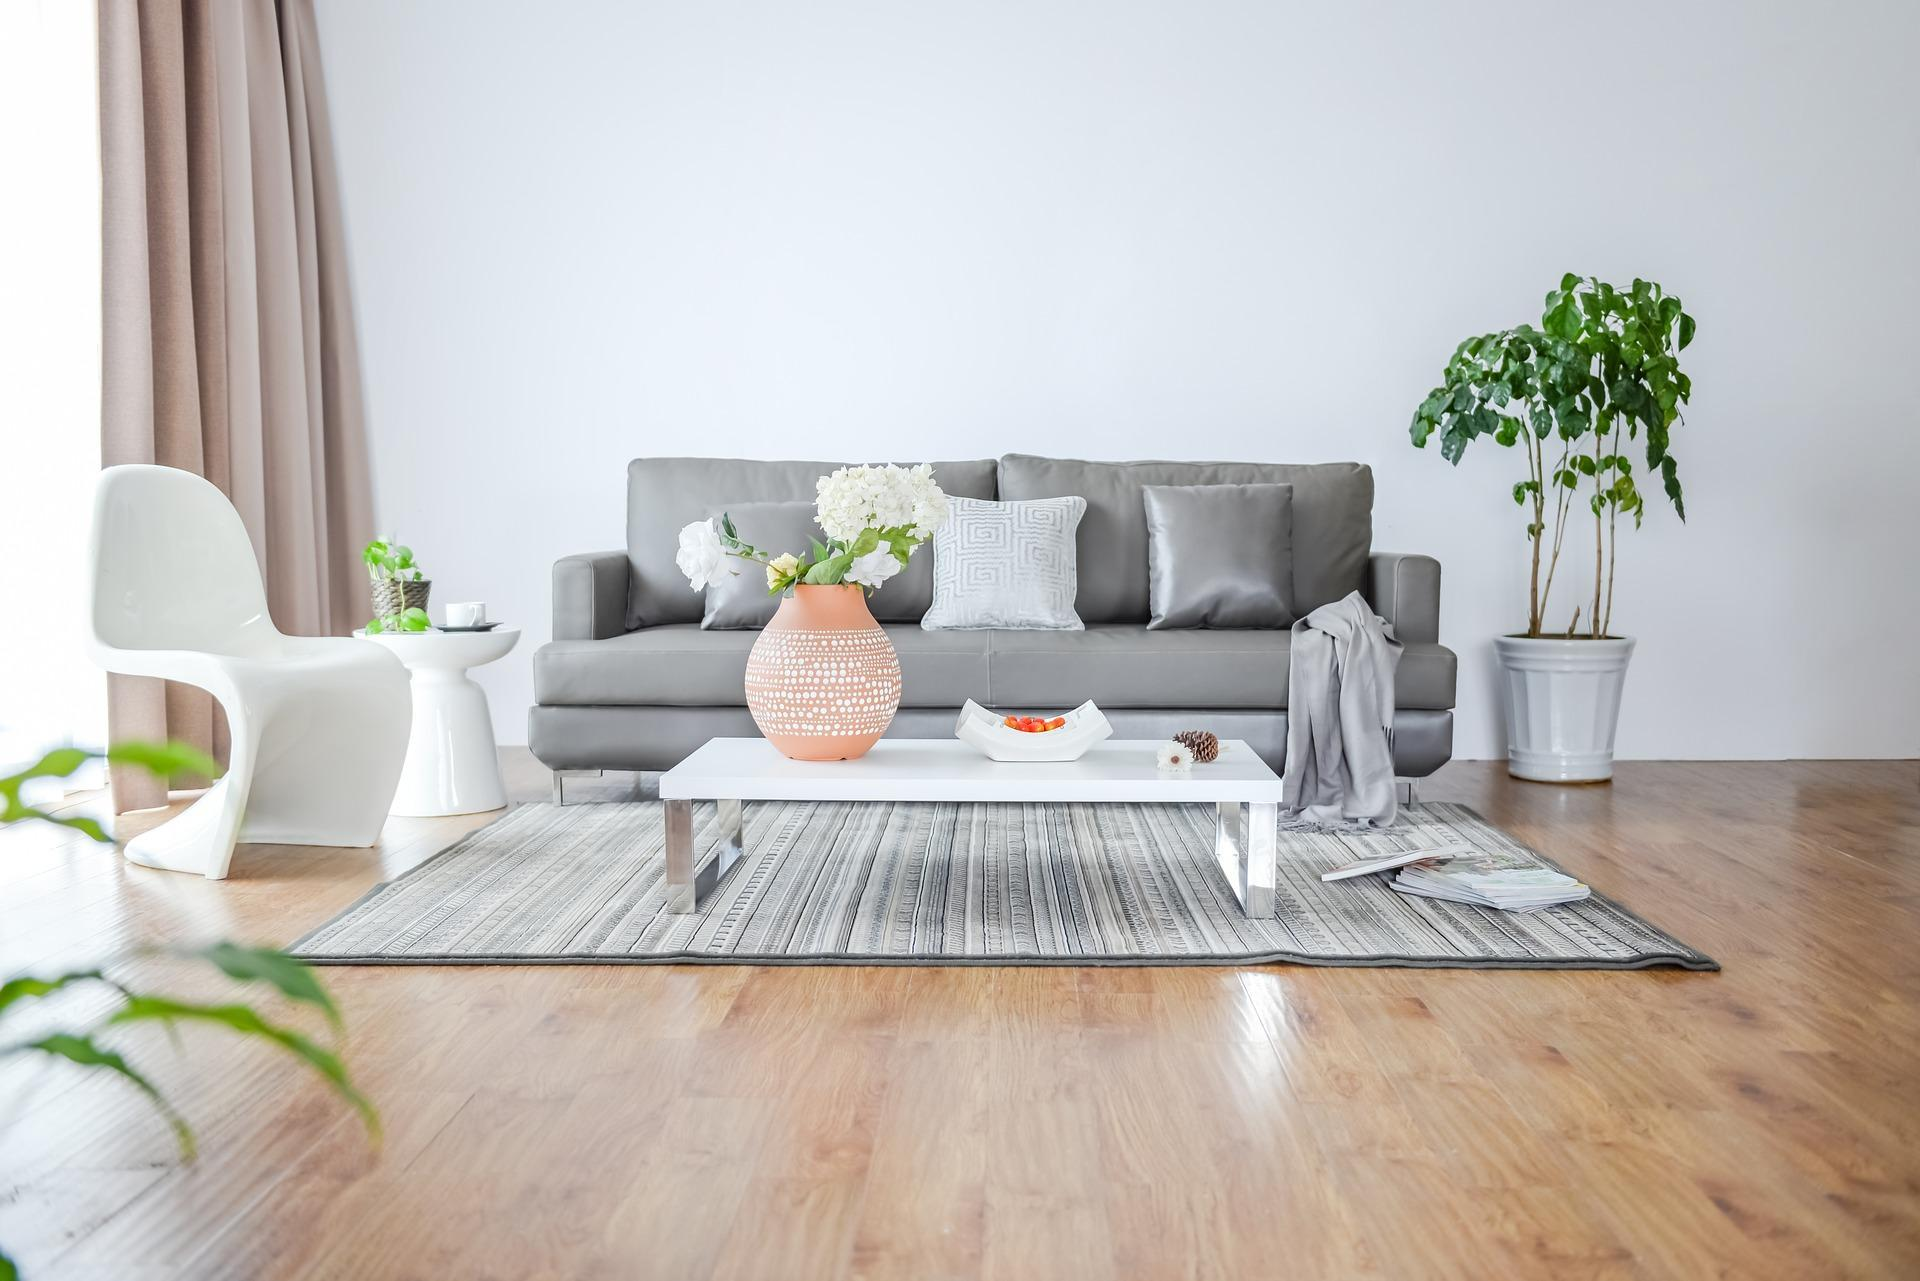 Decoration Interieur Maison for Android - APK Download